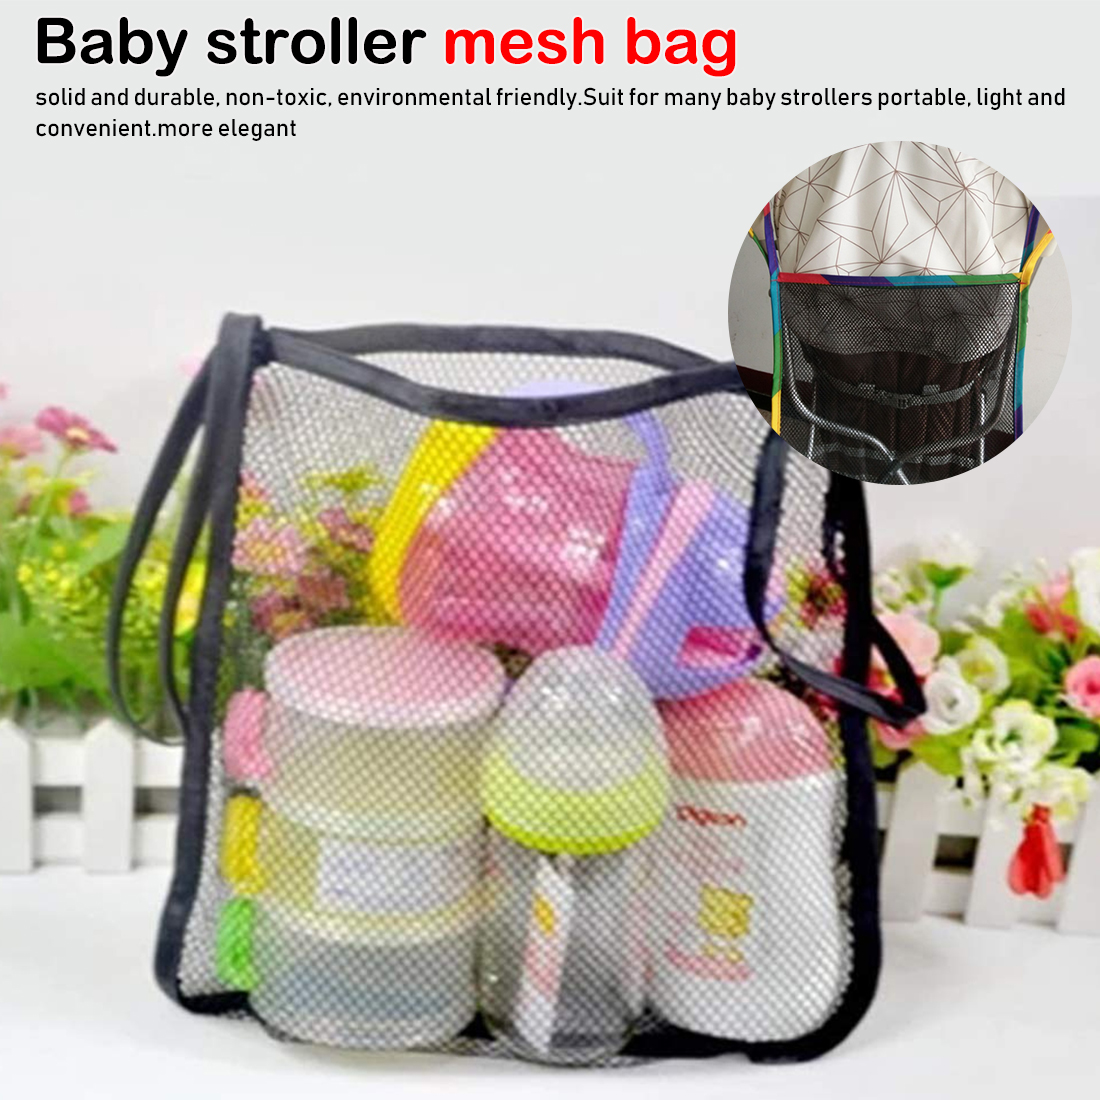 Infant Pram Cart Mesh Hanging Storage Bag Baby Trolley Bag Stroller Organizer Seat Pocket Carriage Bag Stroller Accessories